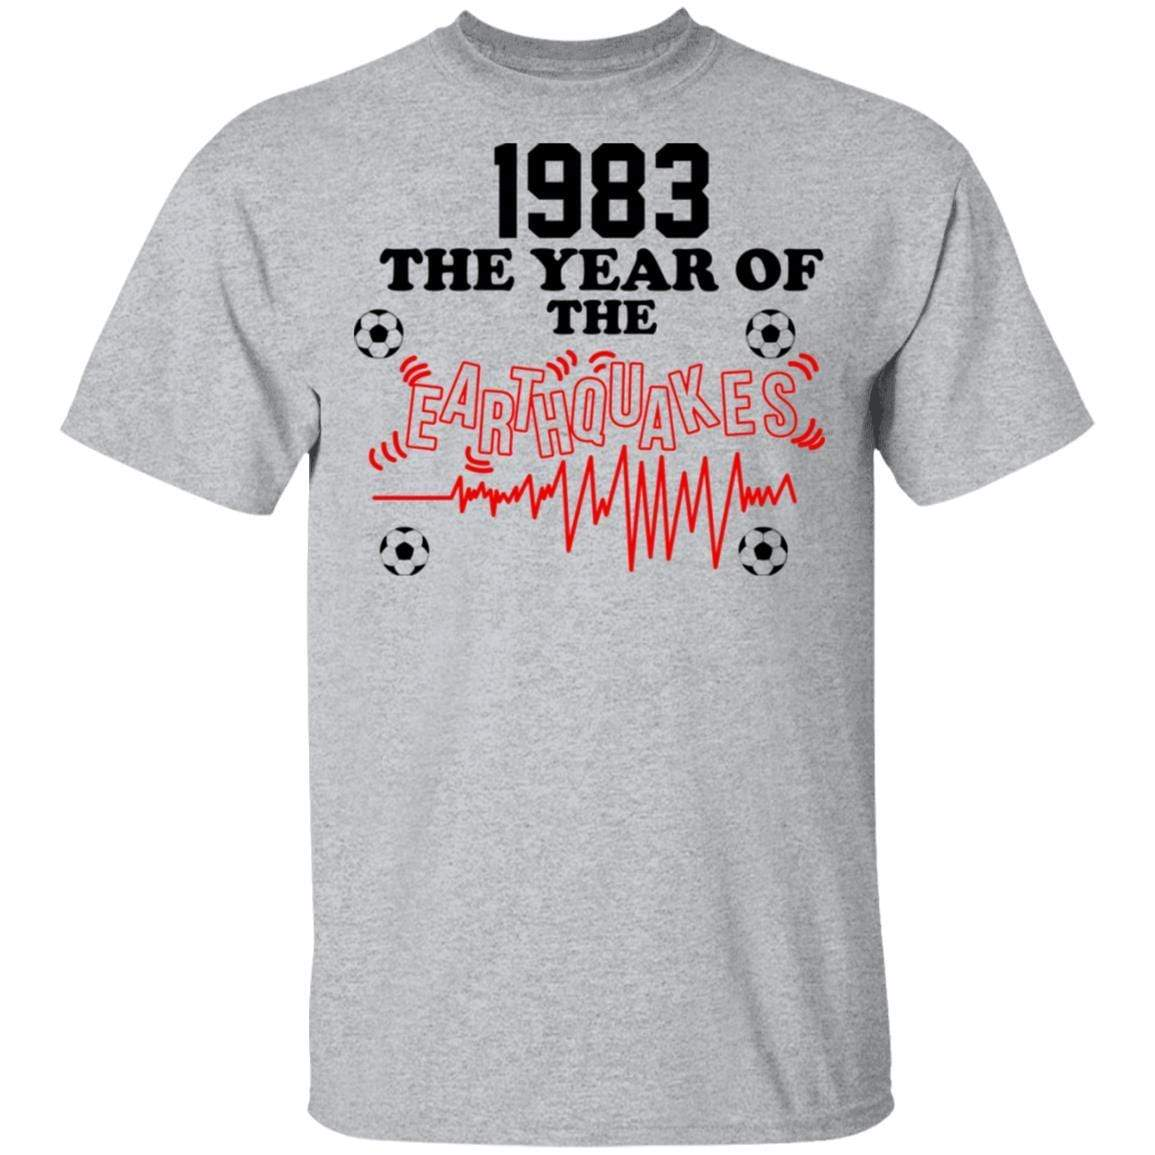 1983 The Year Of The Earthquakes San Jose Earthquakes T-Shirts, Hoodies 1049-9972-86355409-48200 - Tee Ript